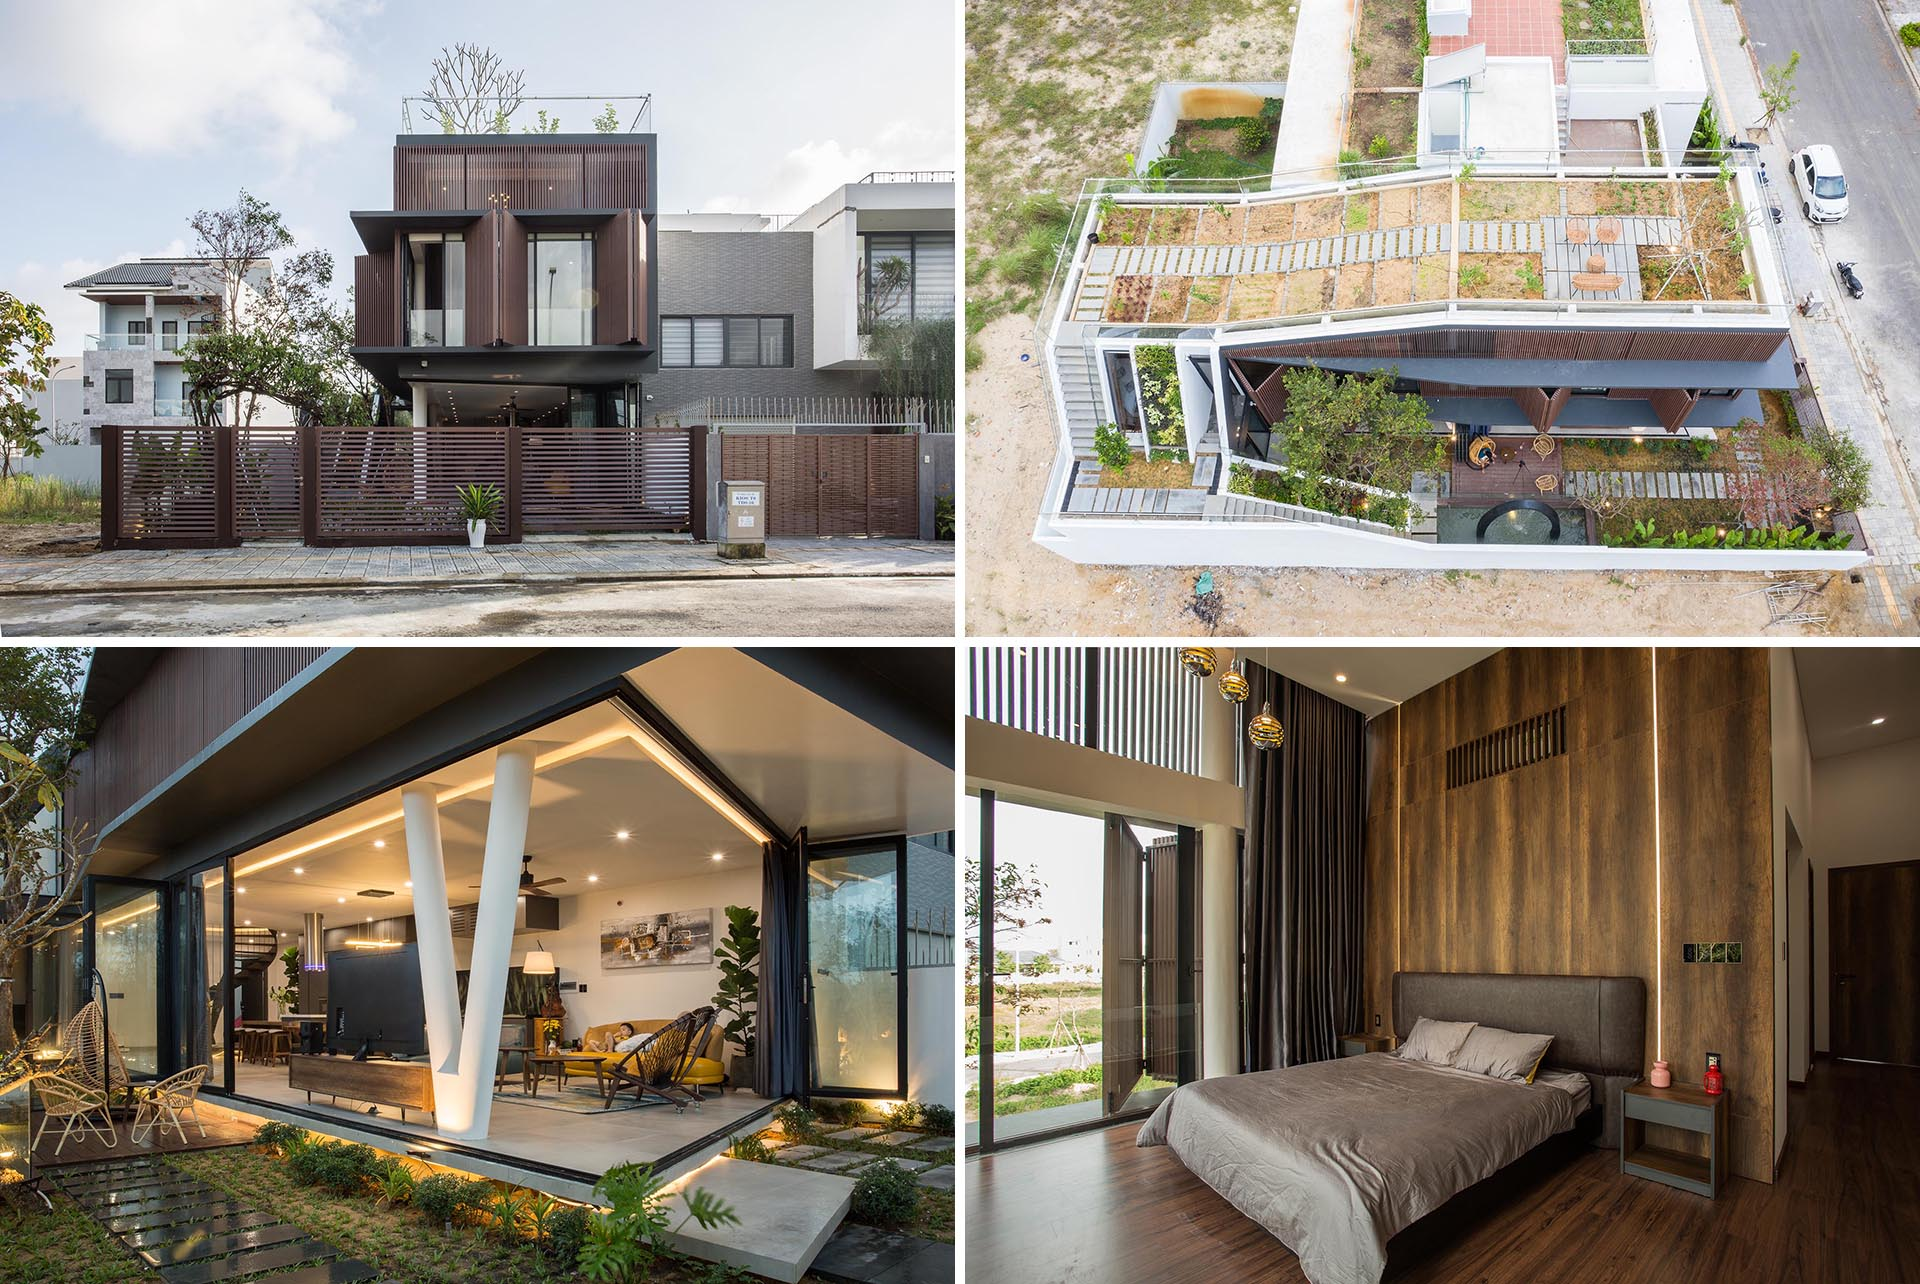 A modern home with a rooftop herb and vegetable garden.